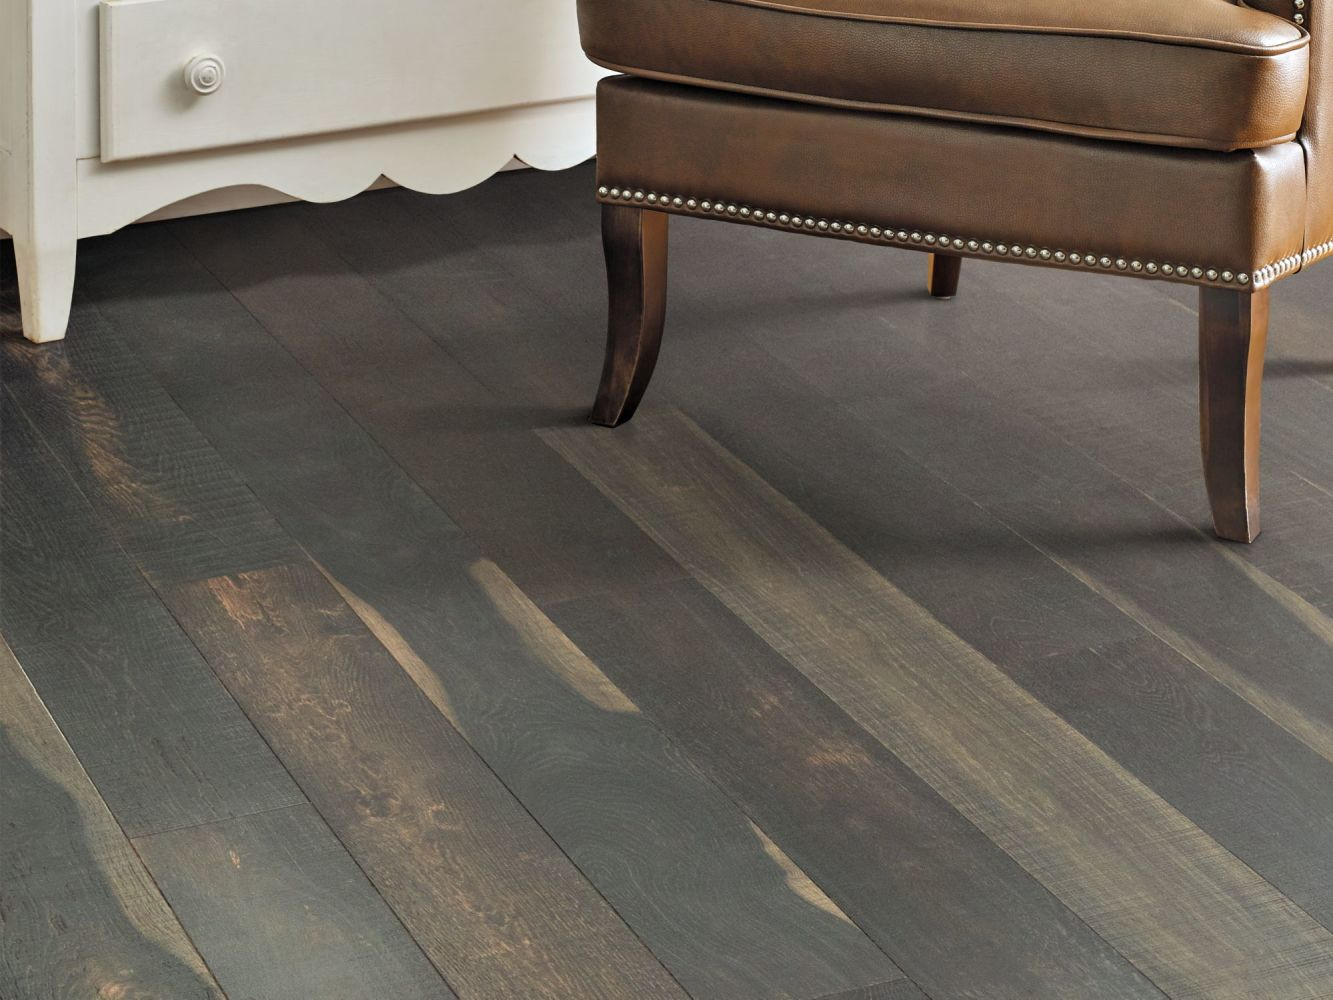 Shaw Floors Floorte Exquisite Pewter Oak 09037_250RH